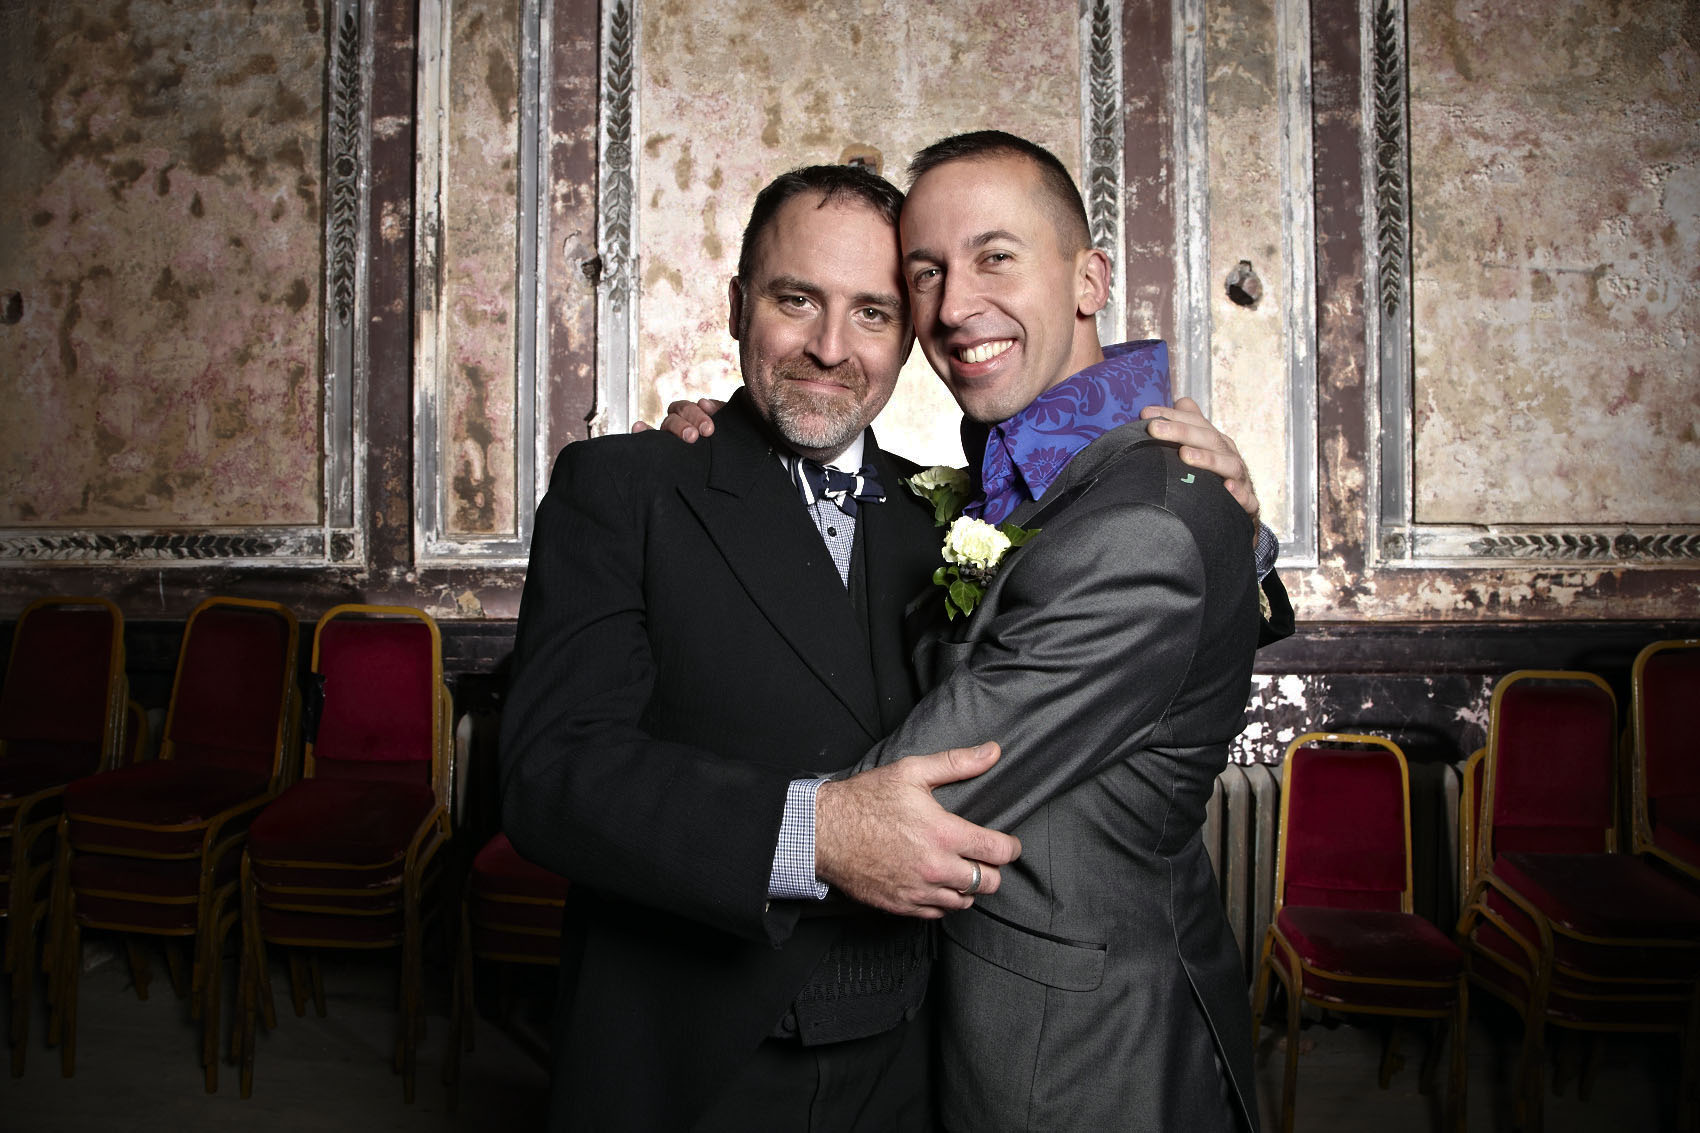 Benjamin Till and Nathan Taylor got married at Alexandra Palace on Saturday